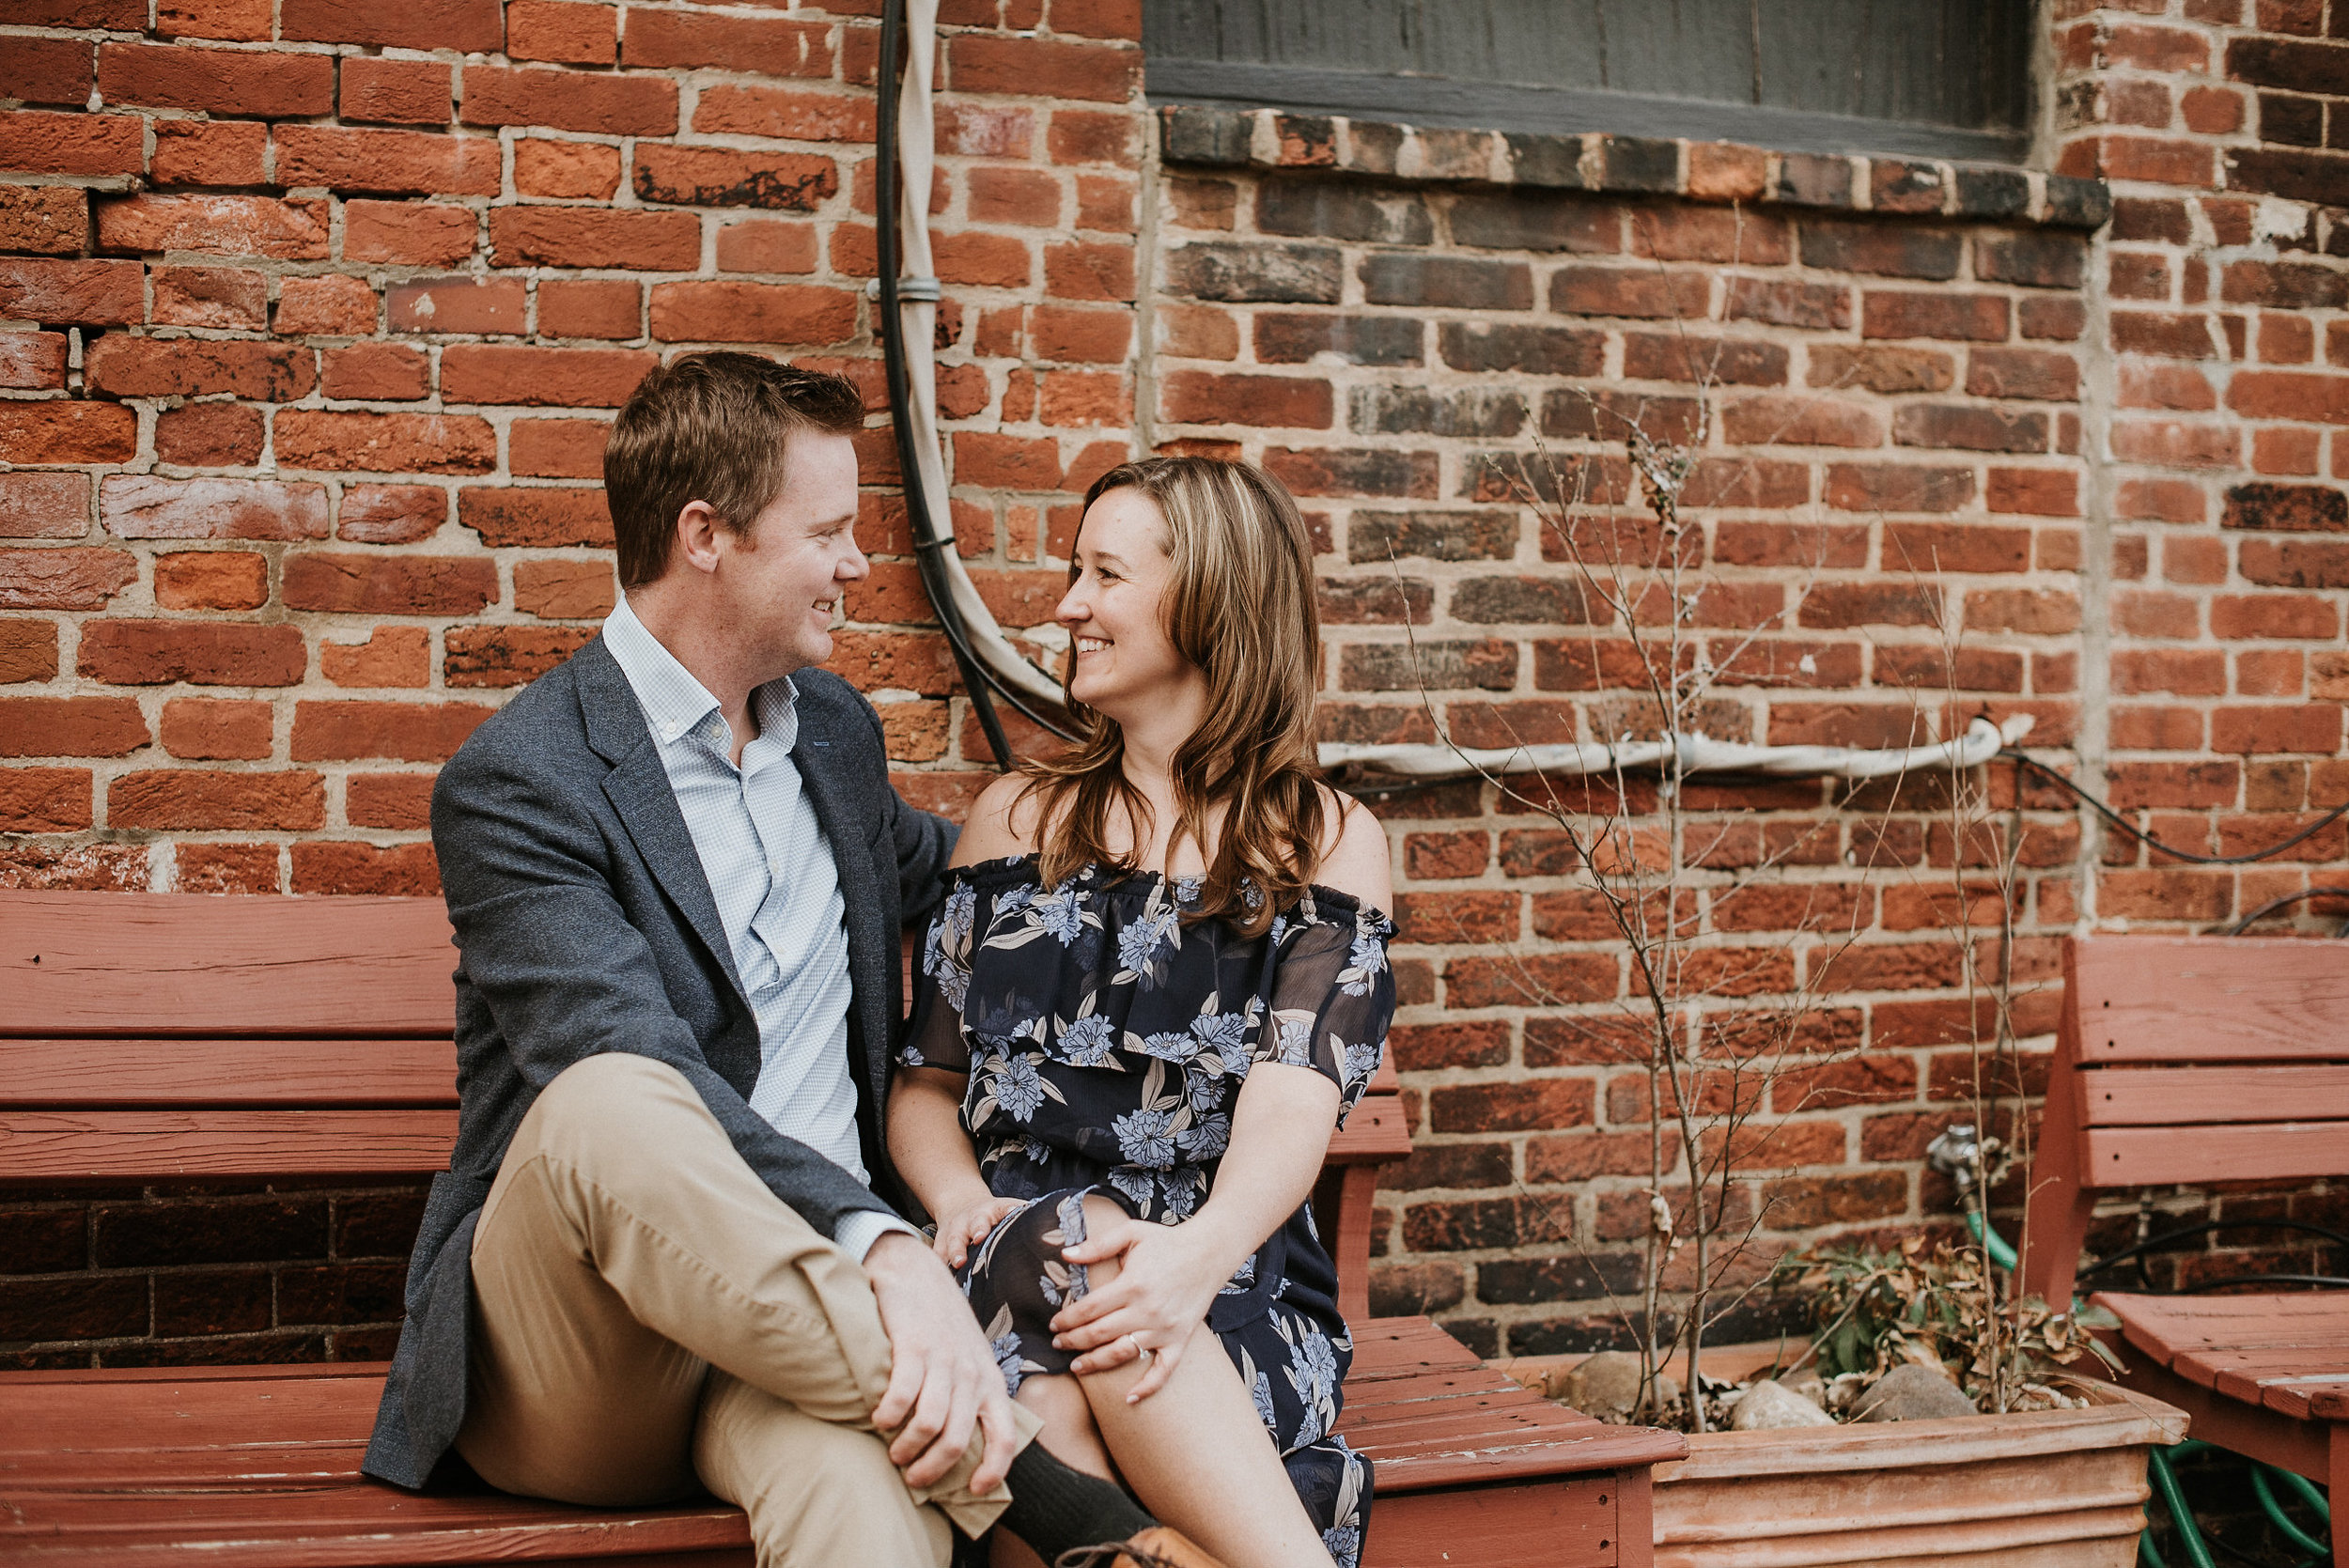 Couple sitting on red bench in front of brick wall